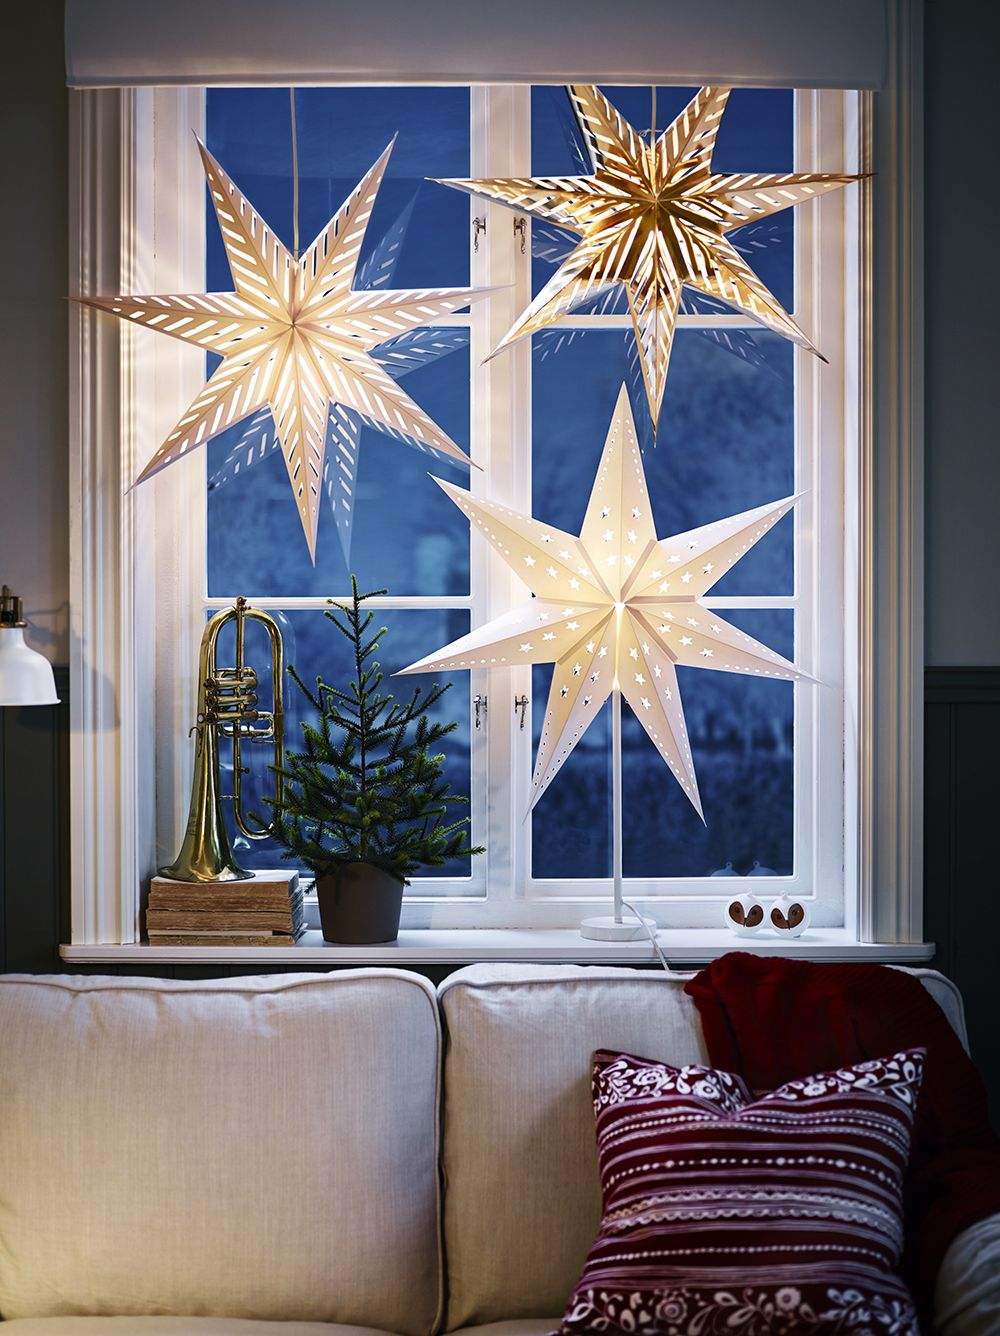 Shop For Furniture Home Accessories More Christmas Window Decorations Christmas Decorations For The Home Xmas Window Decorations